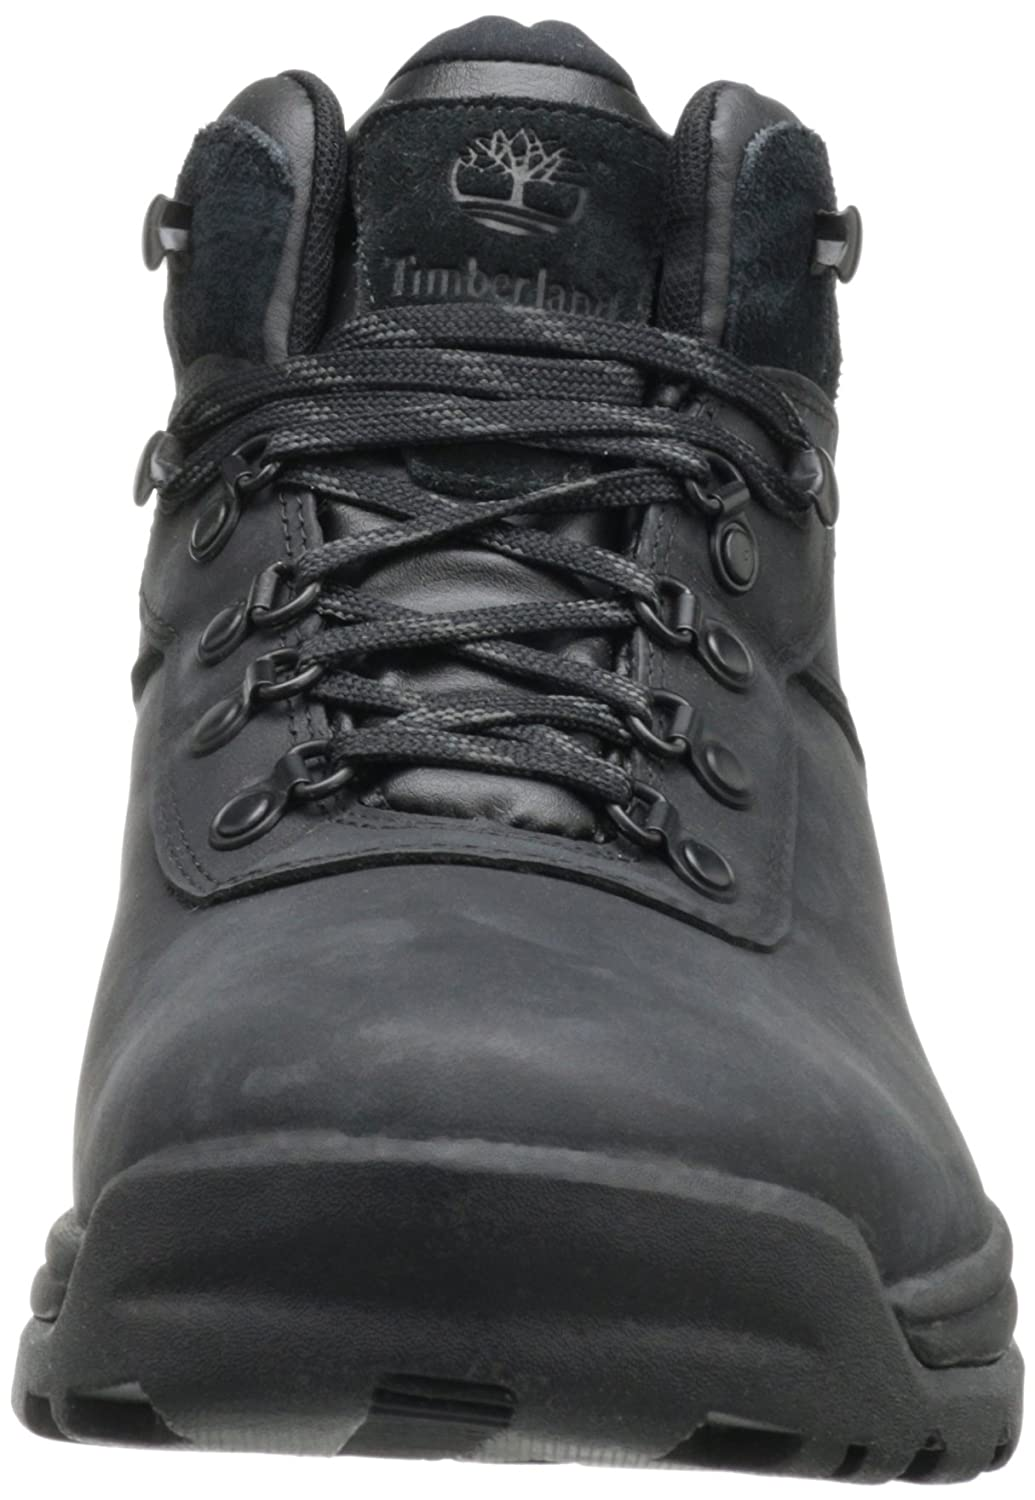 2eb11fb0da2 Timberland Men's Flume Waterproof Boot